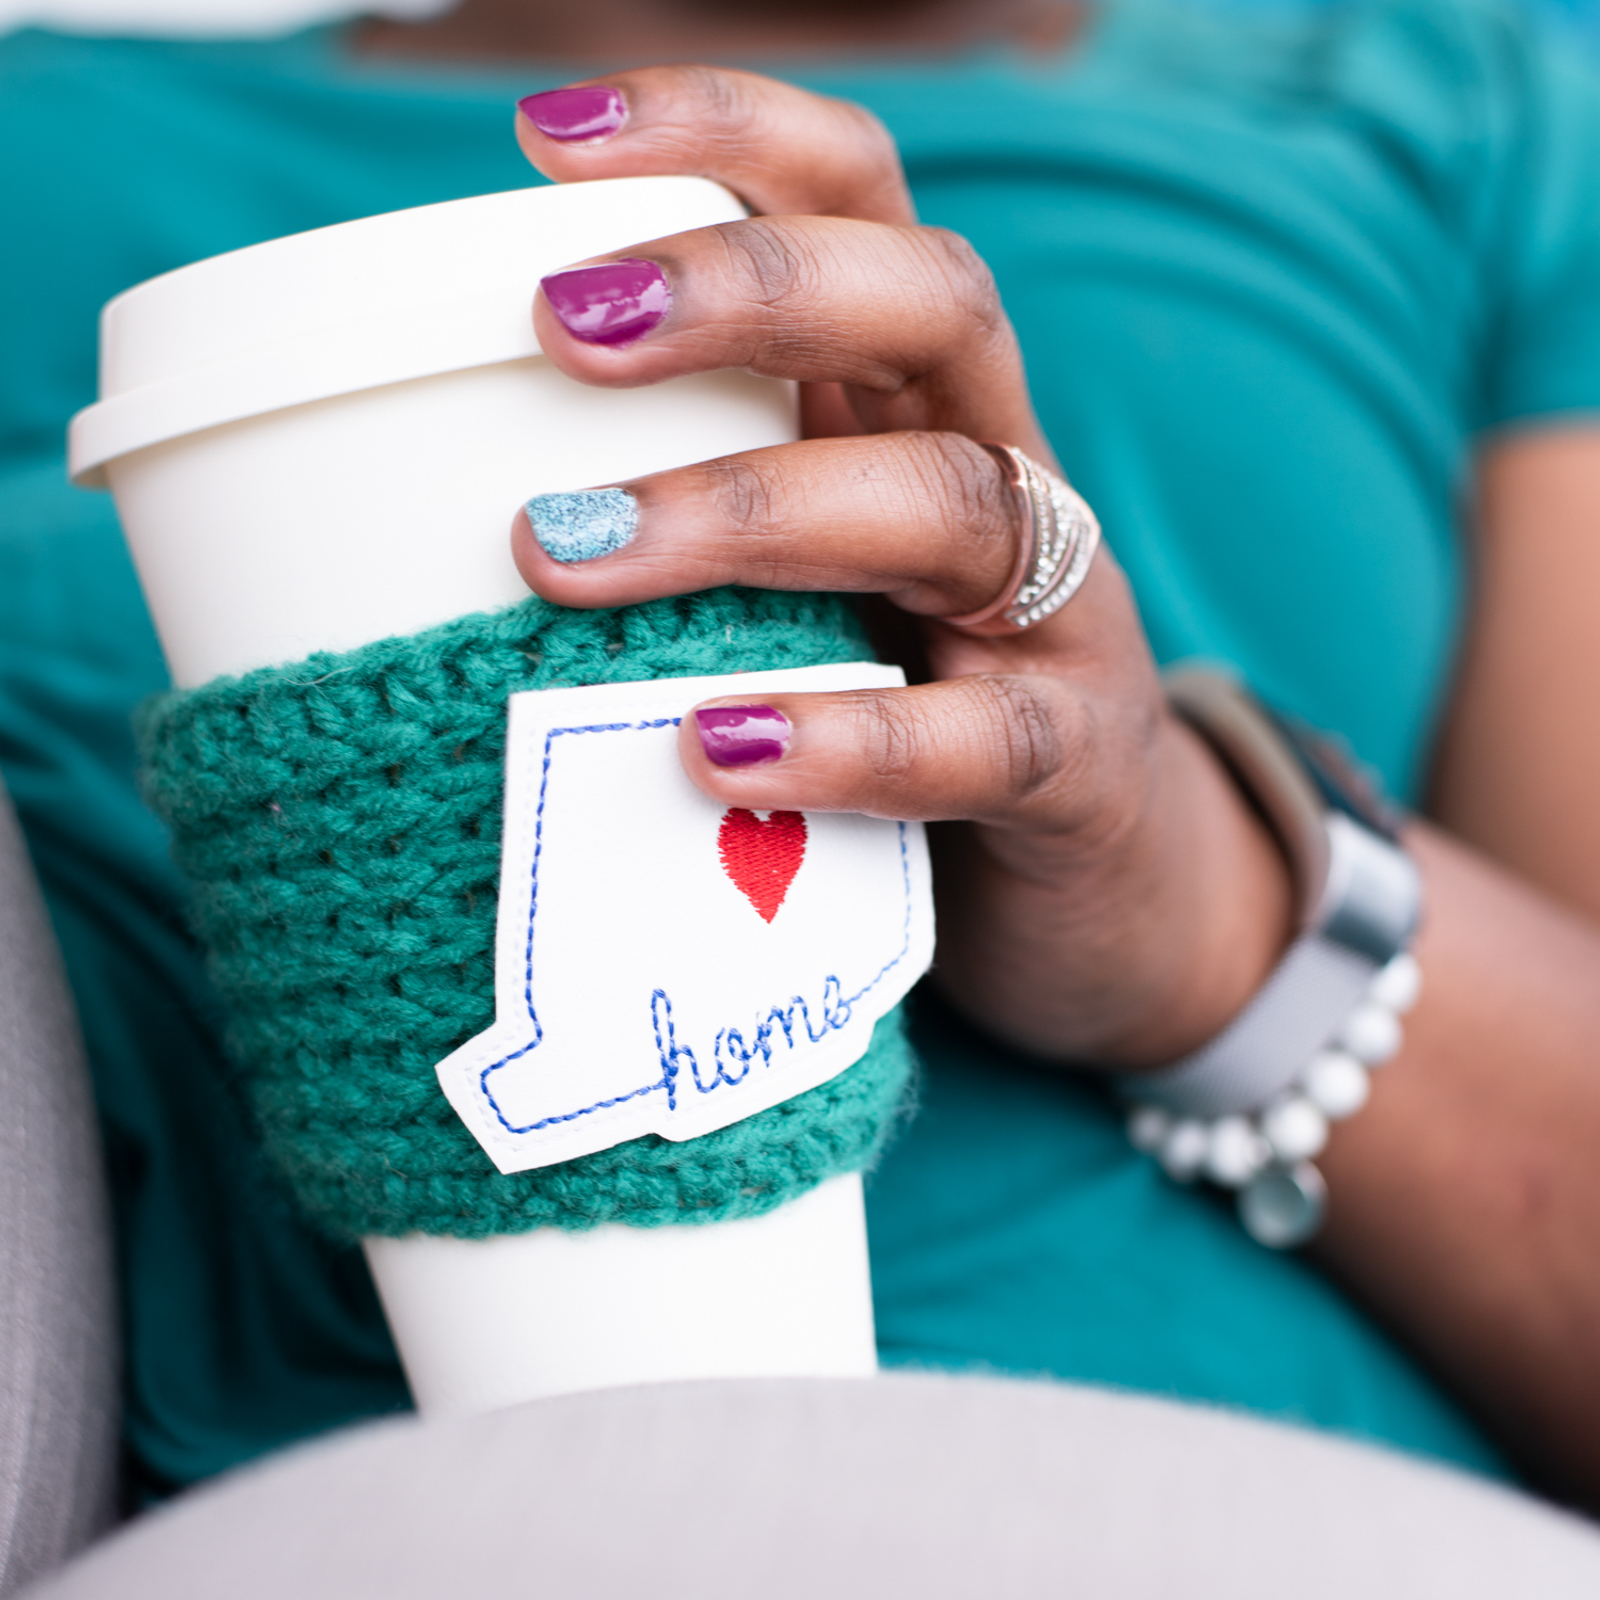 detail of a crochet artist sipping coffee using one of her creations, photographed as part of a brand shoot by jamie bannon photography.